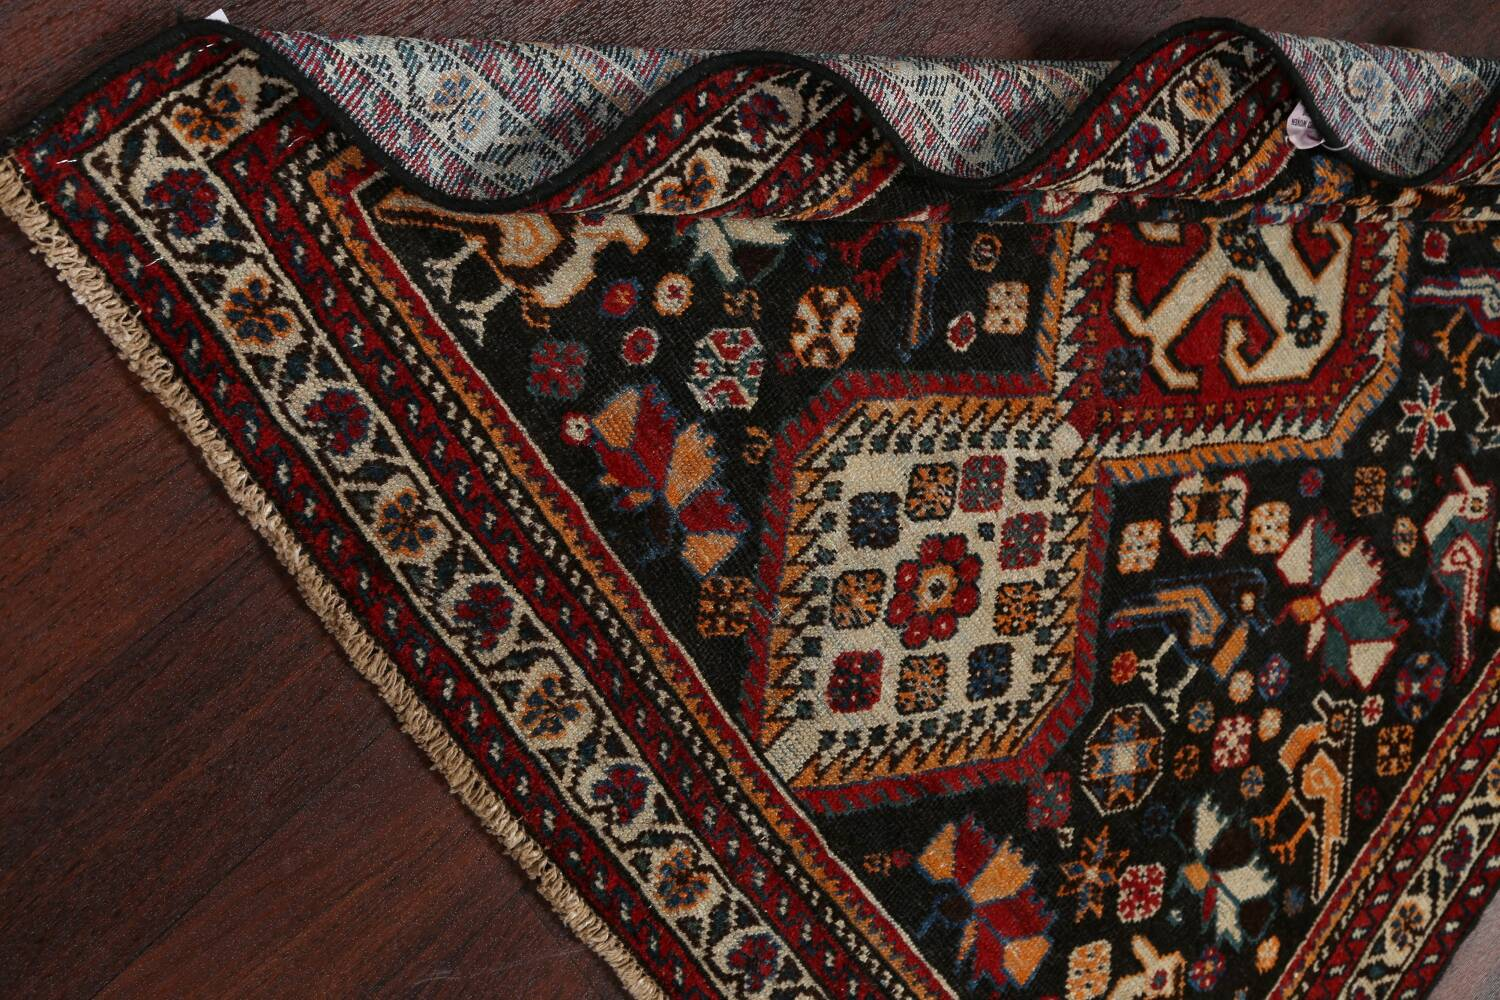 Antique Pre-1900 Tribal Bakhtiari Persian Area Rug 4x5 image 16